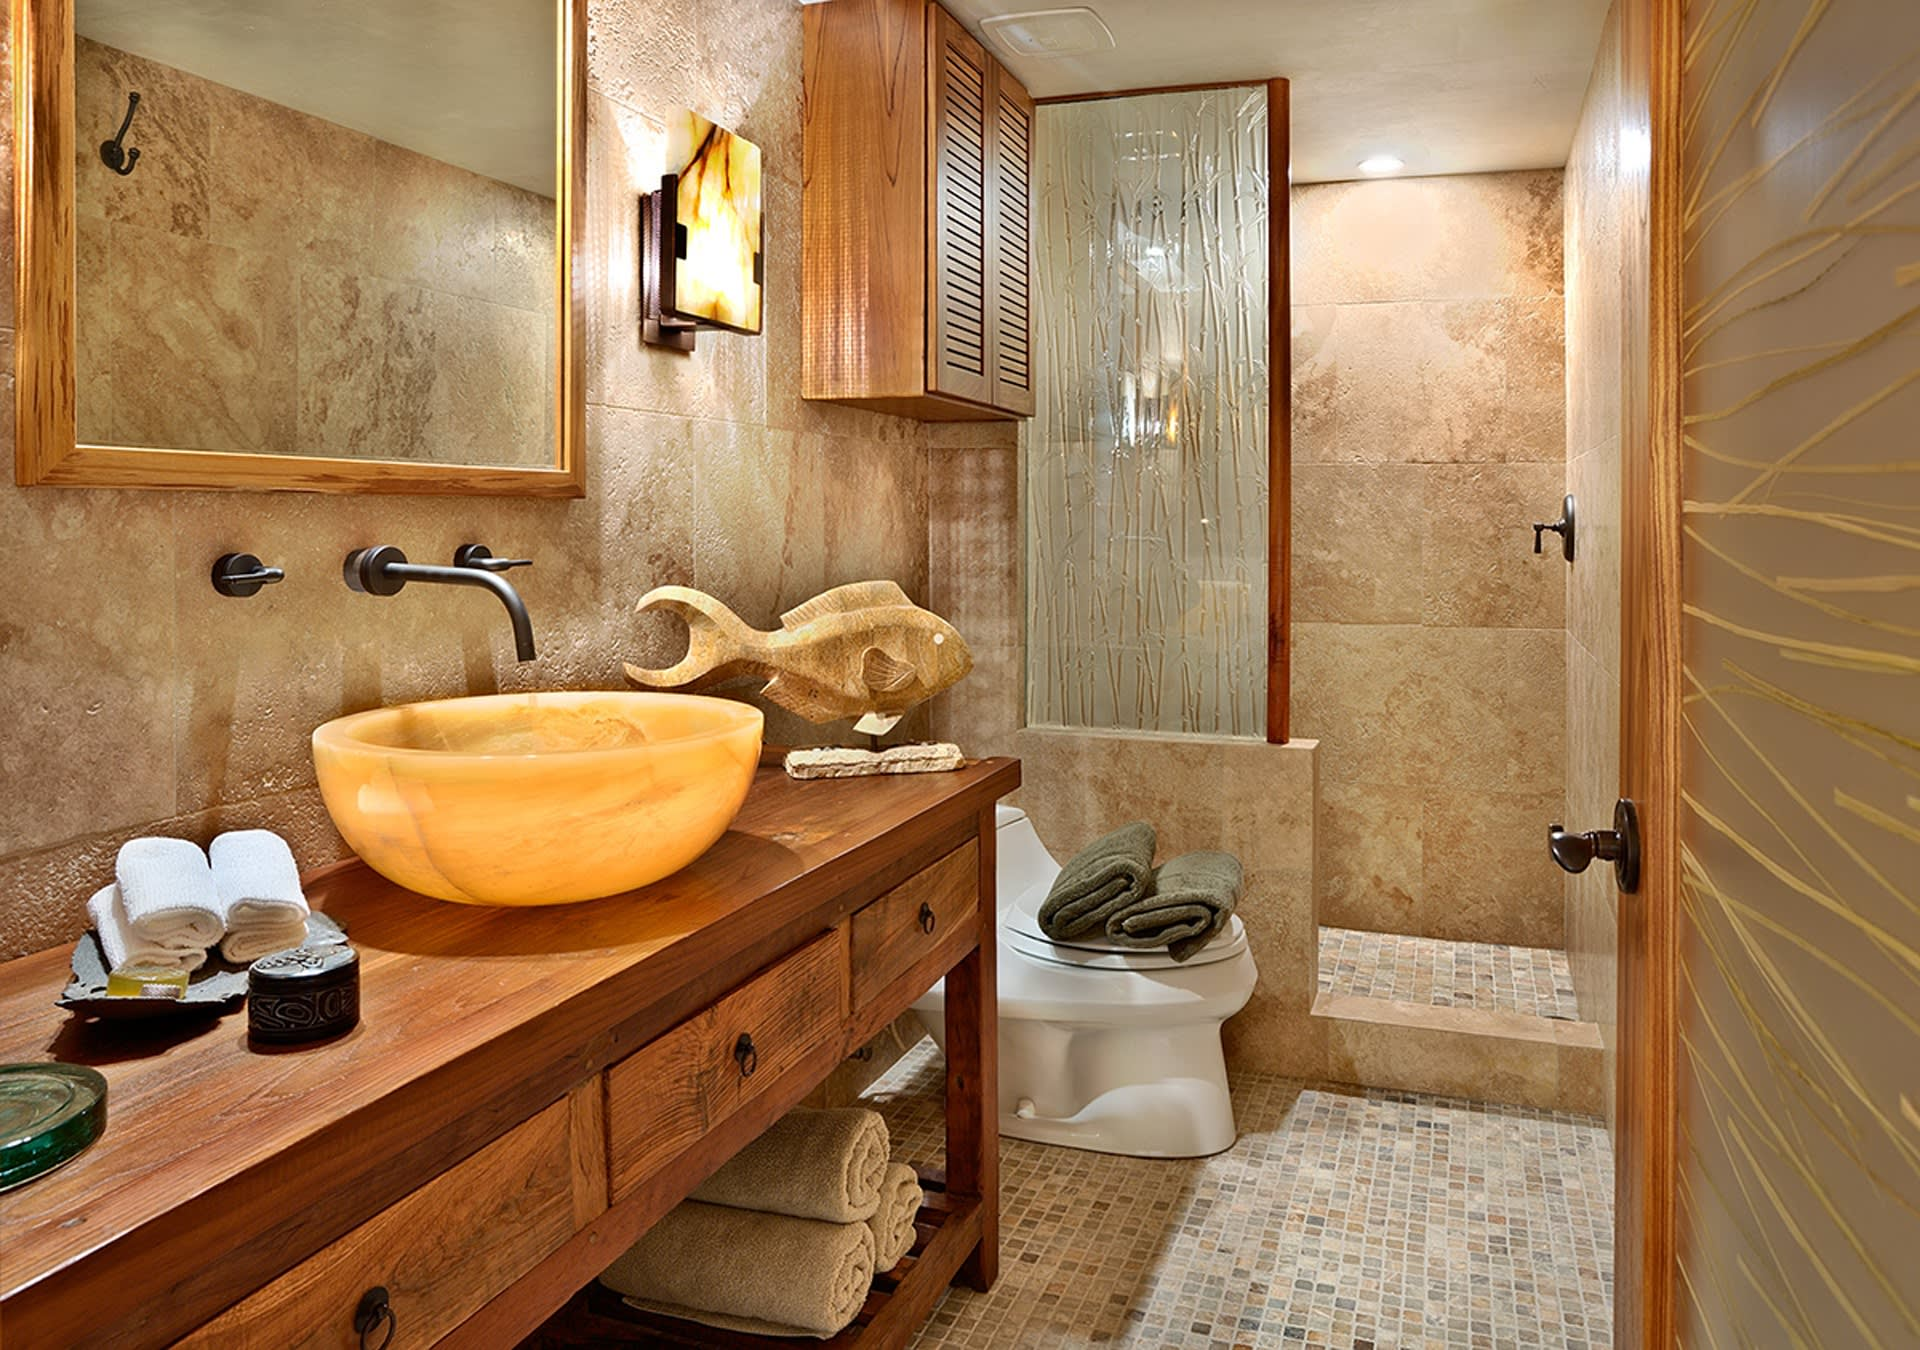 This luxurious bathroom is a welcome sight.